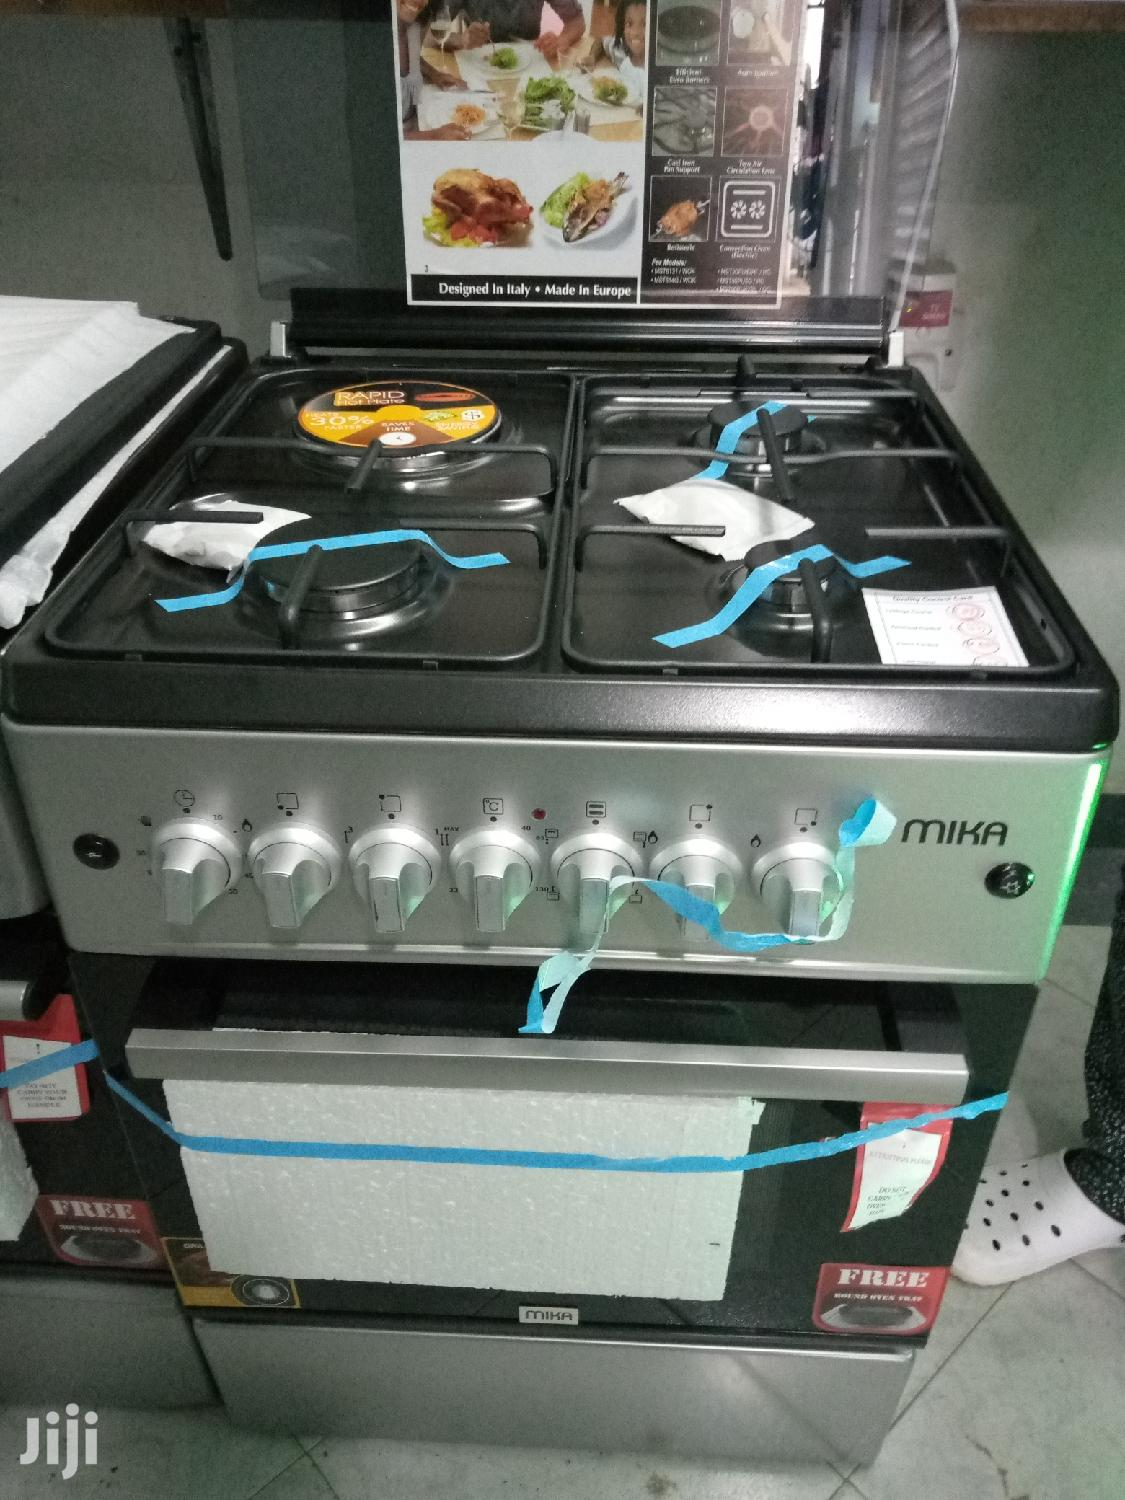 Mika Standing Cookers 58 Cm X 58 Cm, 3G + 1 E | Kitchen Appliances for sale in Kisauni, Mombasa, Kenya